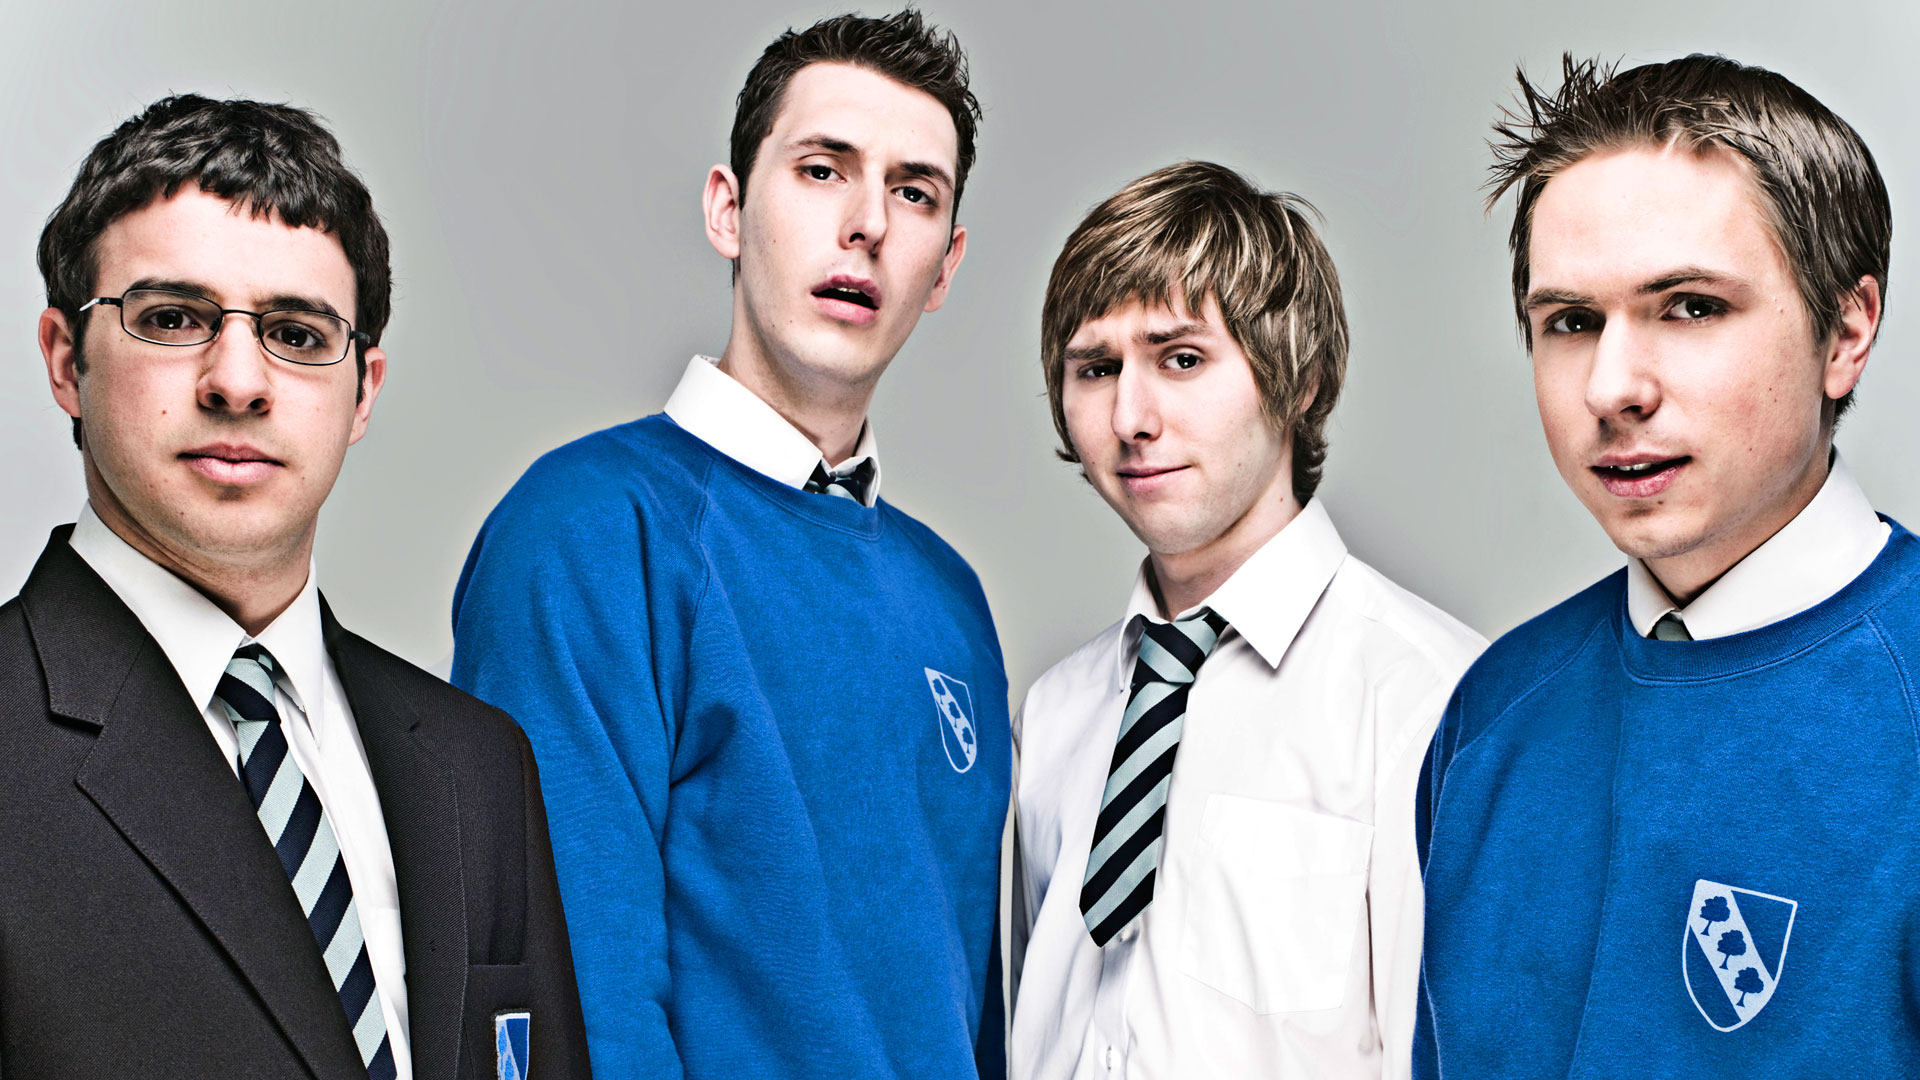 The Inbetweeners - All 4